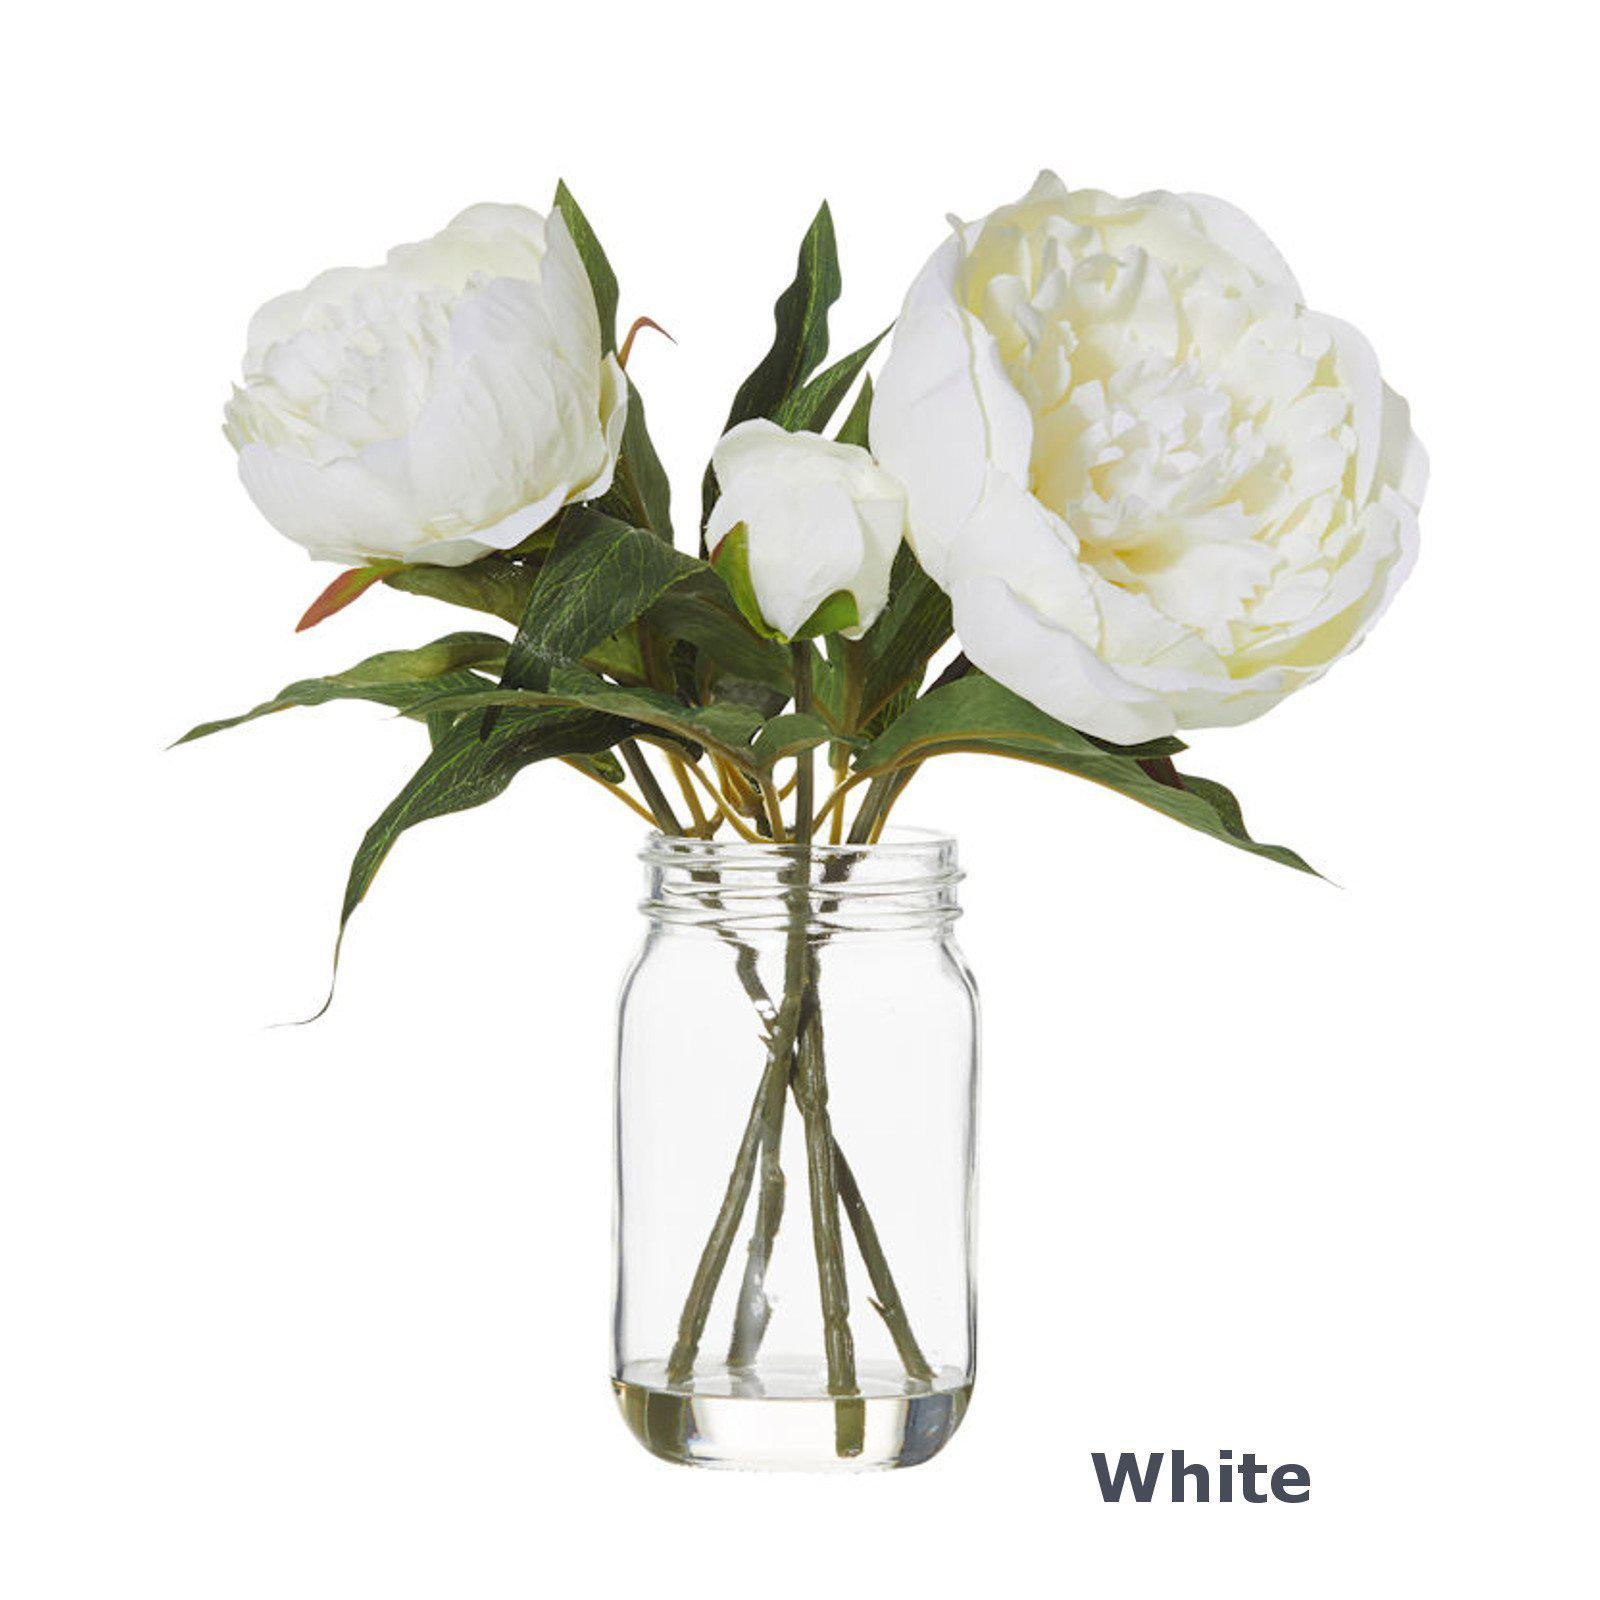 Peony Flowers & Glass Jar Vase - Artificial Floral Arrangement-artificial flowers and plants-Chef's Quality Cookware